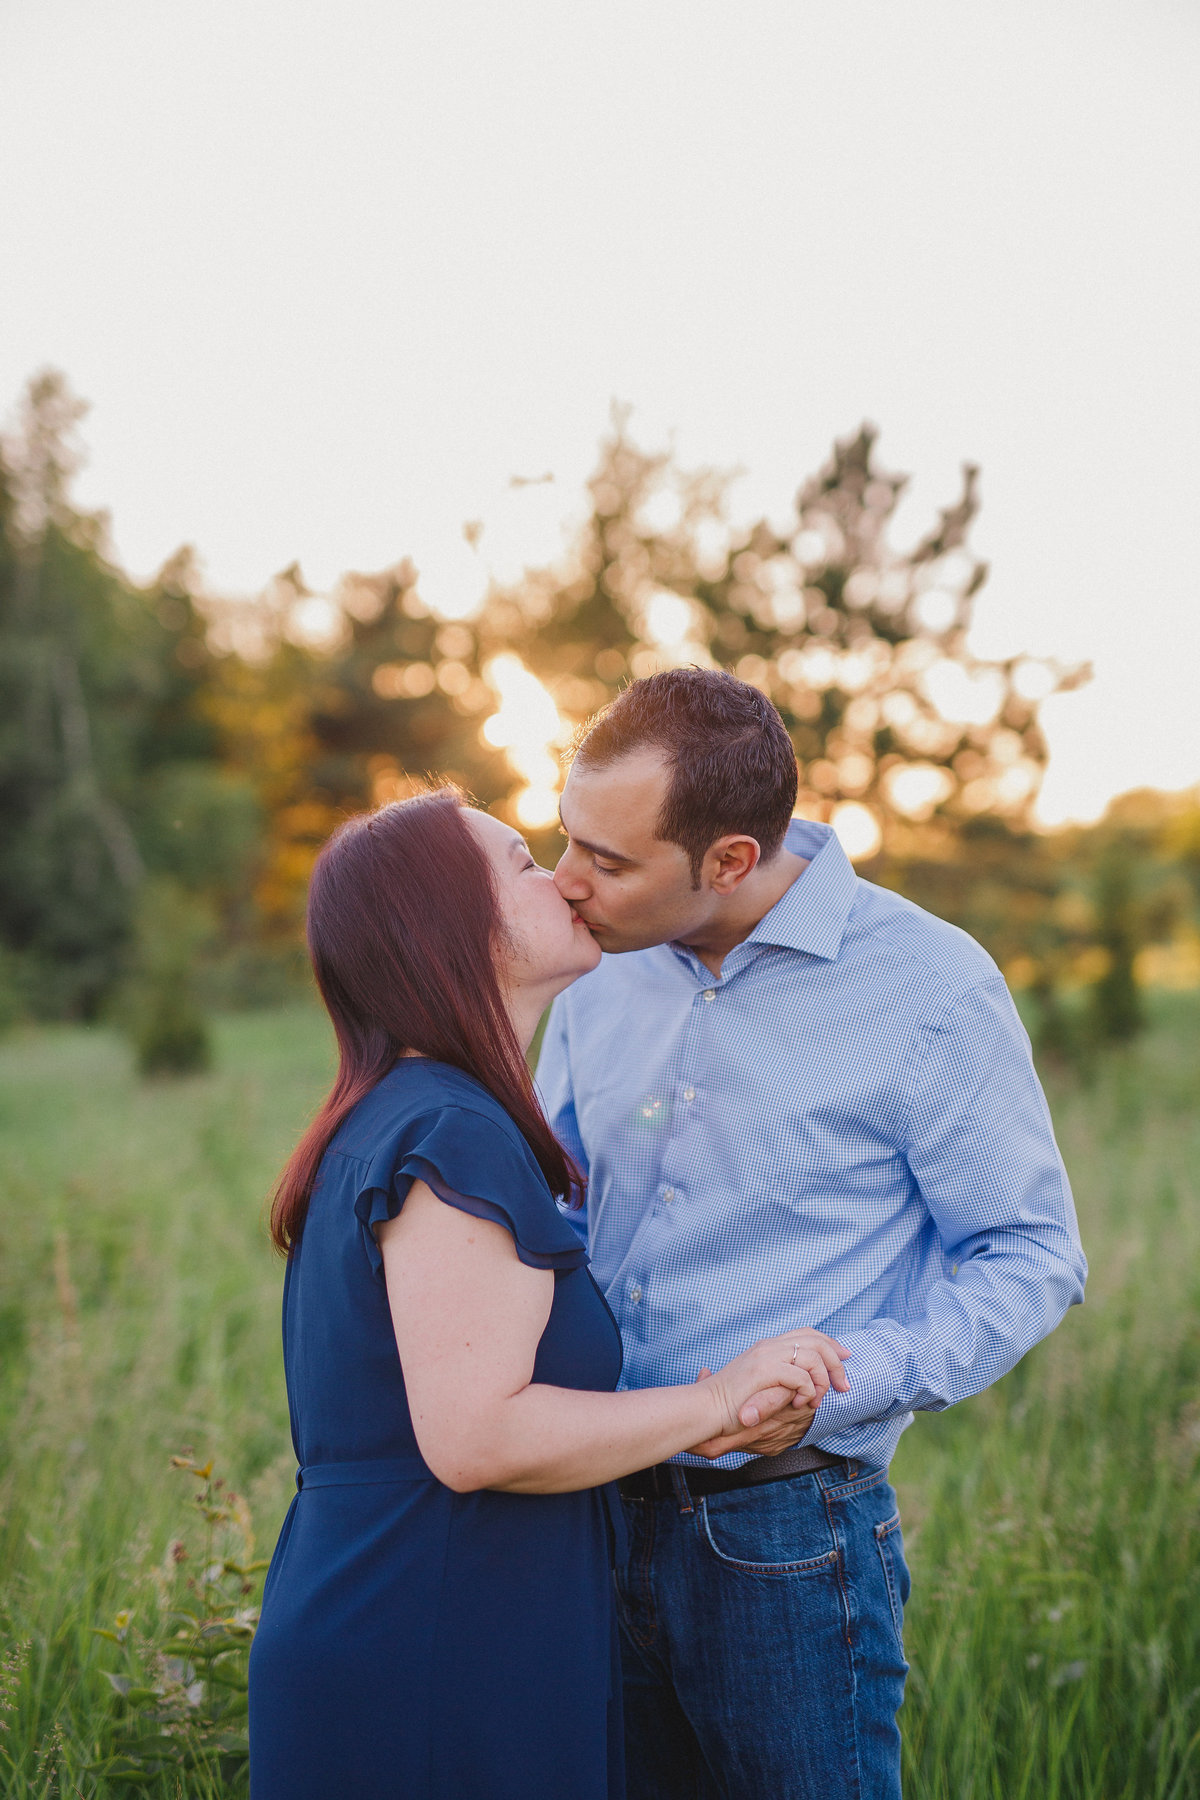 MikeAndDelphineEngaged_060717_WeeThreeSparrowsPhotography_113